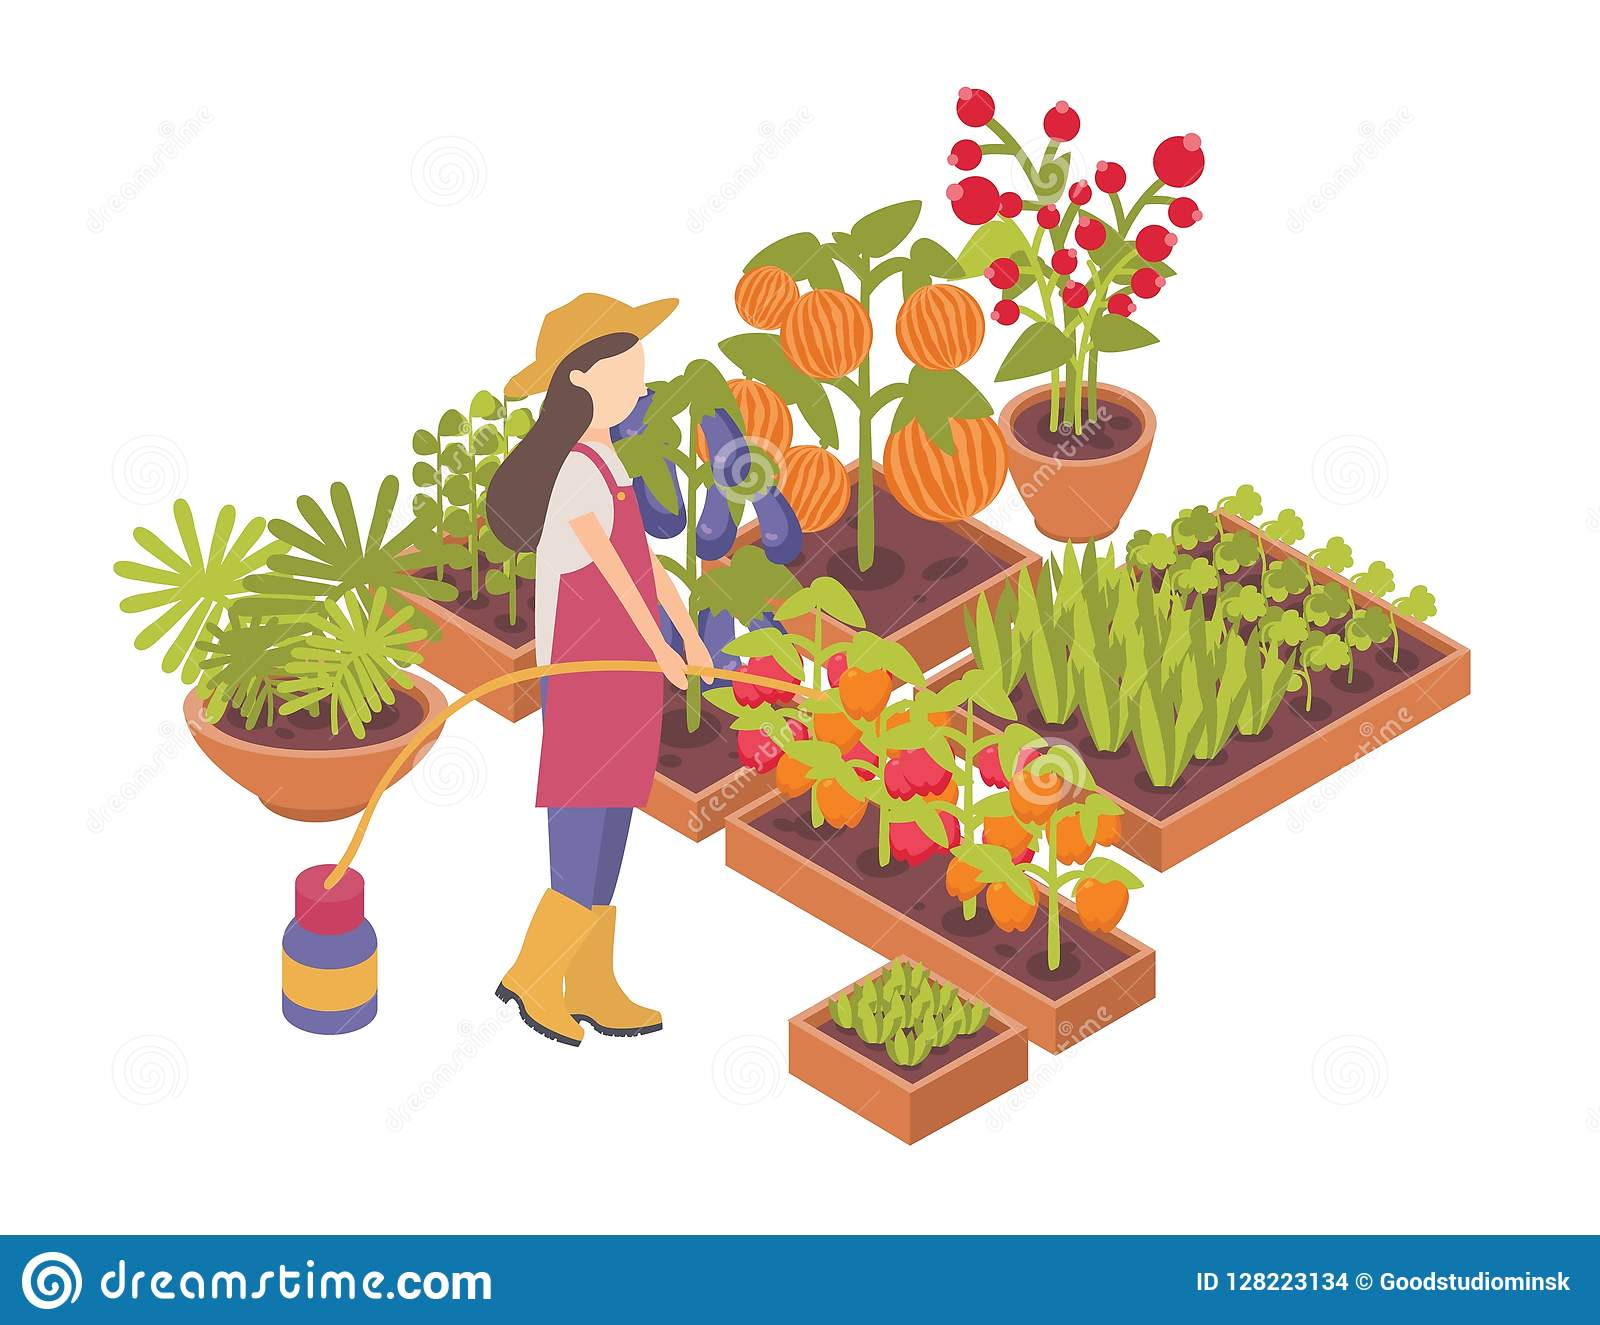 Female gardener or farmer watering crops growing in boxes or planters isolated on white background. Agriculture worker